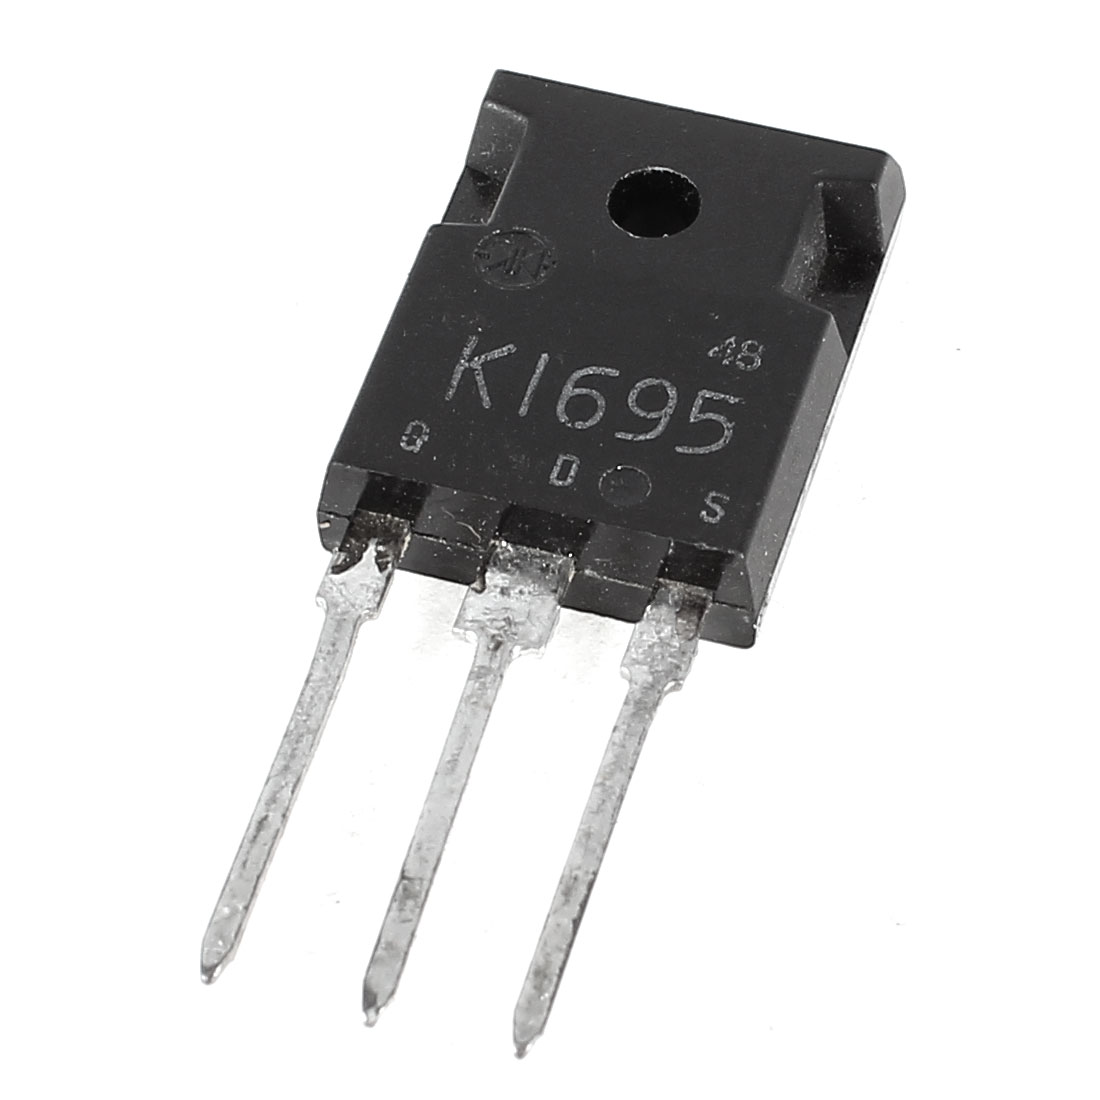 2SK1695 High Voltage Semiconductor 3 Pin NPN Power Transistor 10A 500V 80W